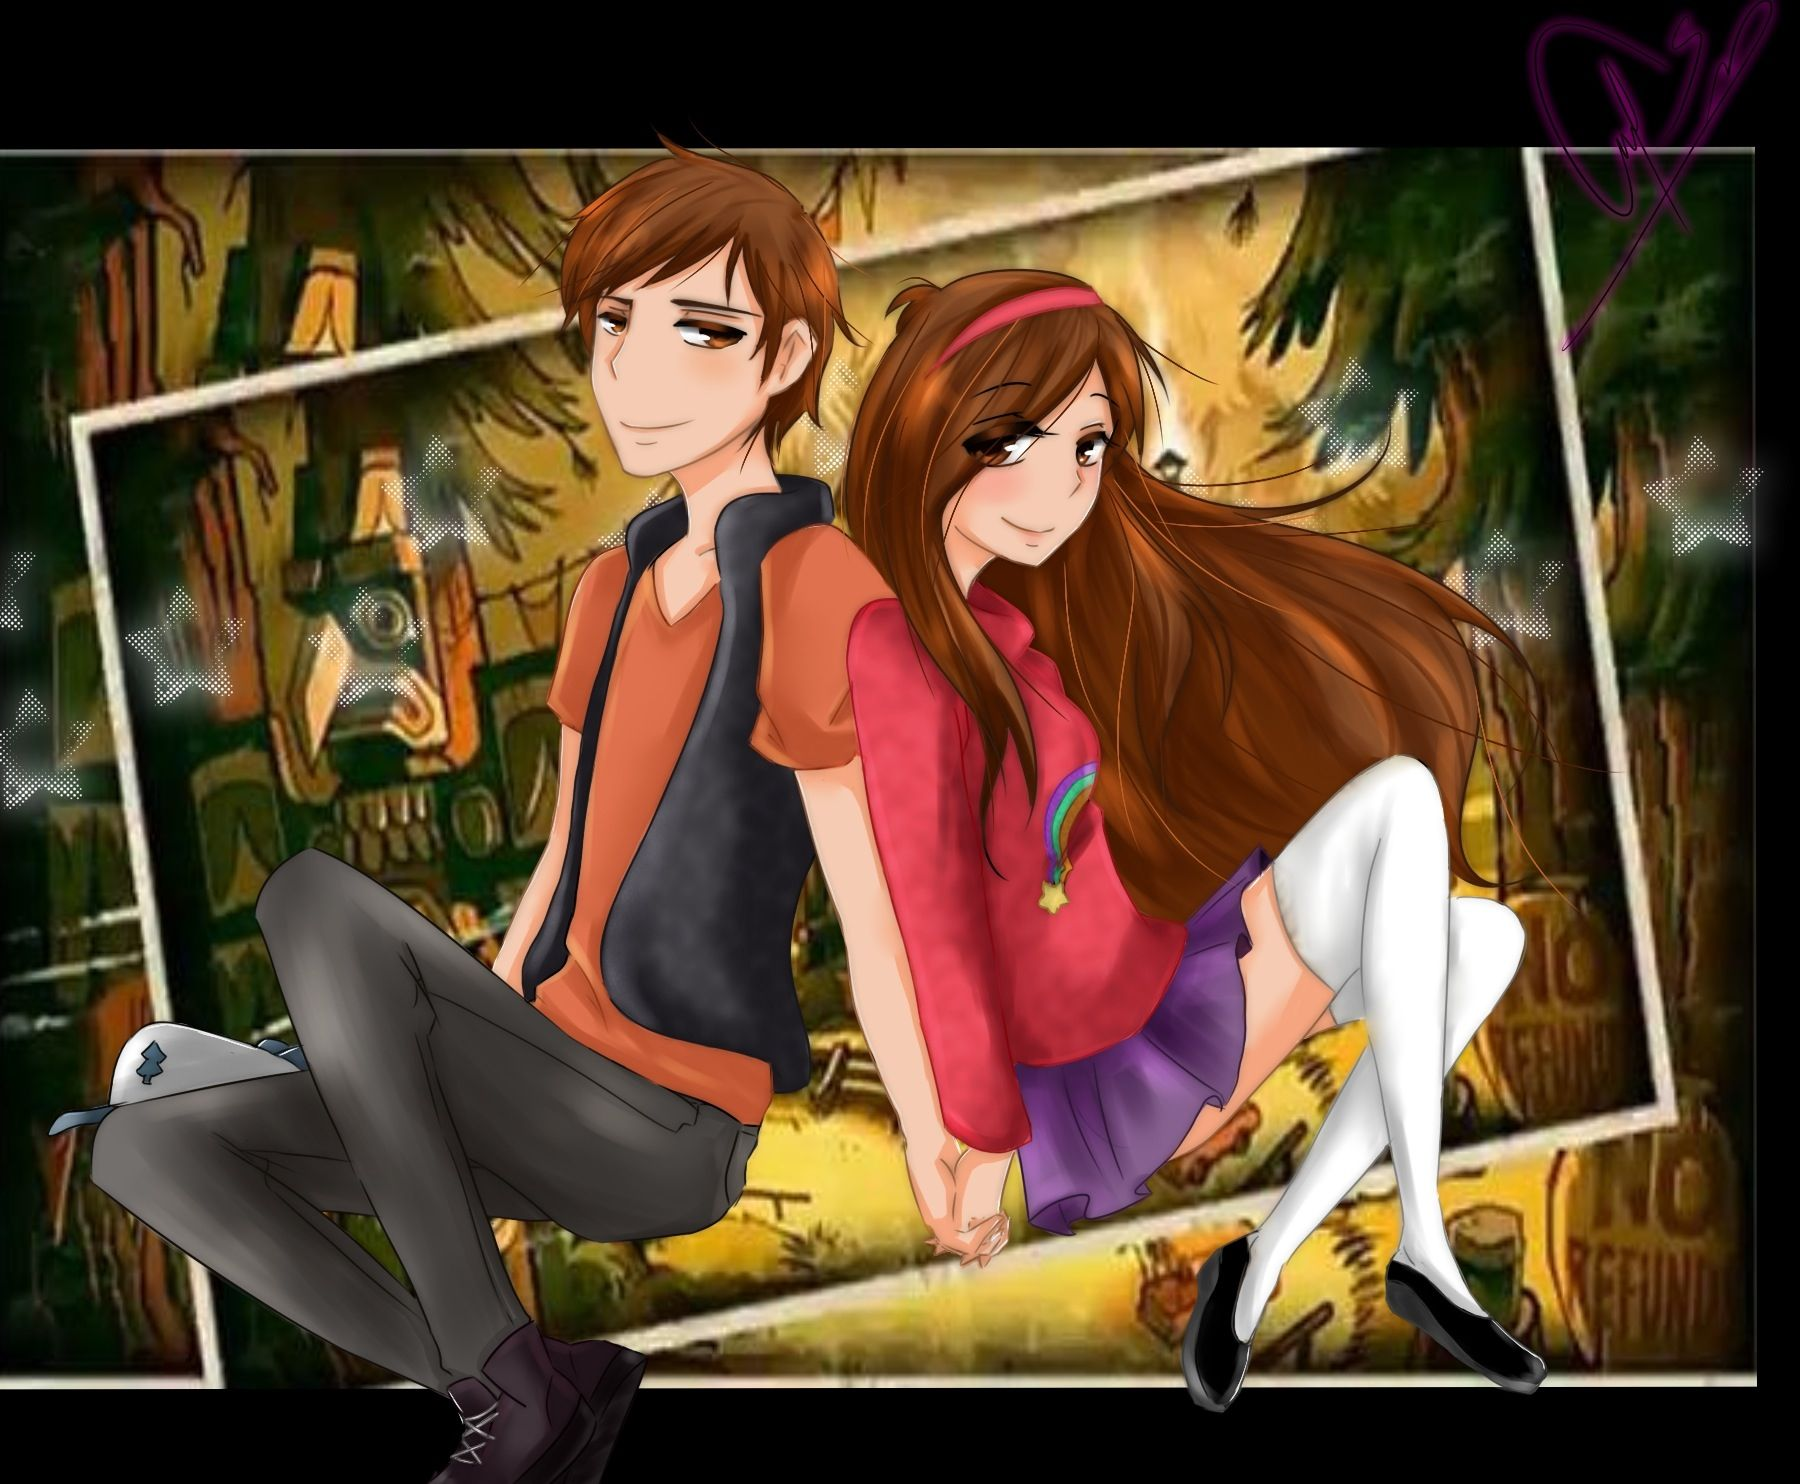 Gravity Falls Mabel And Dipper Pines Anime